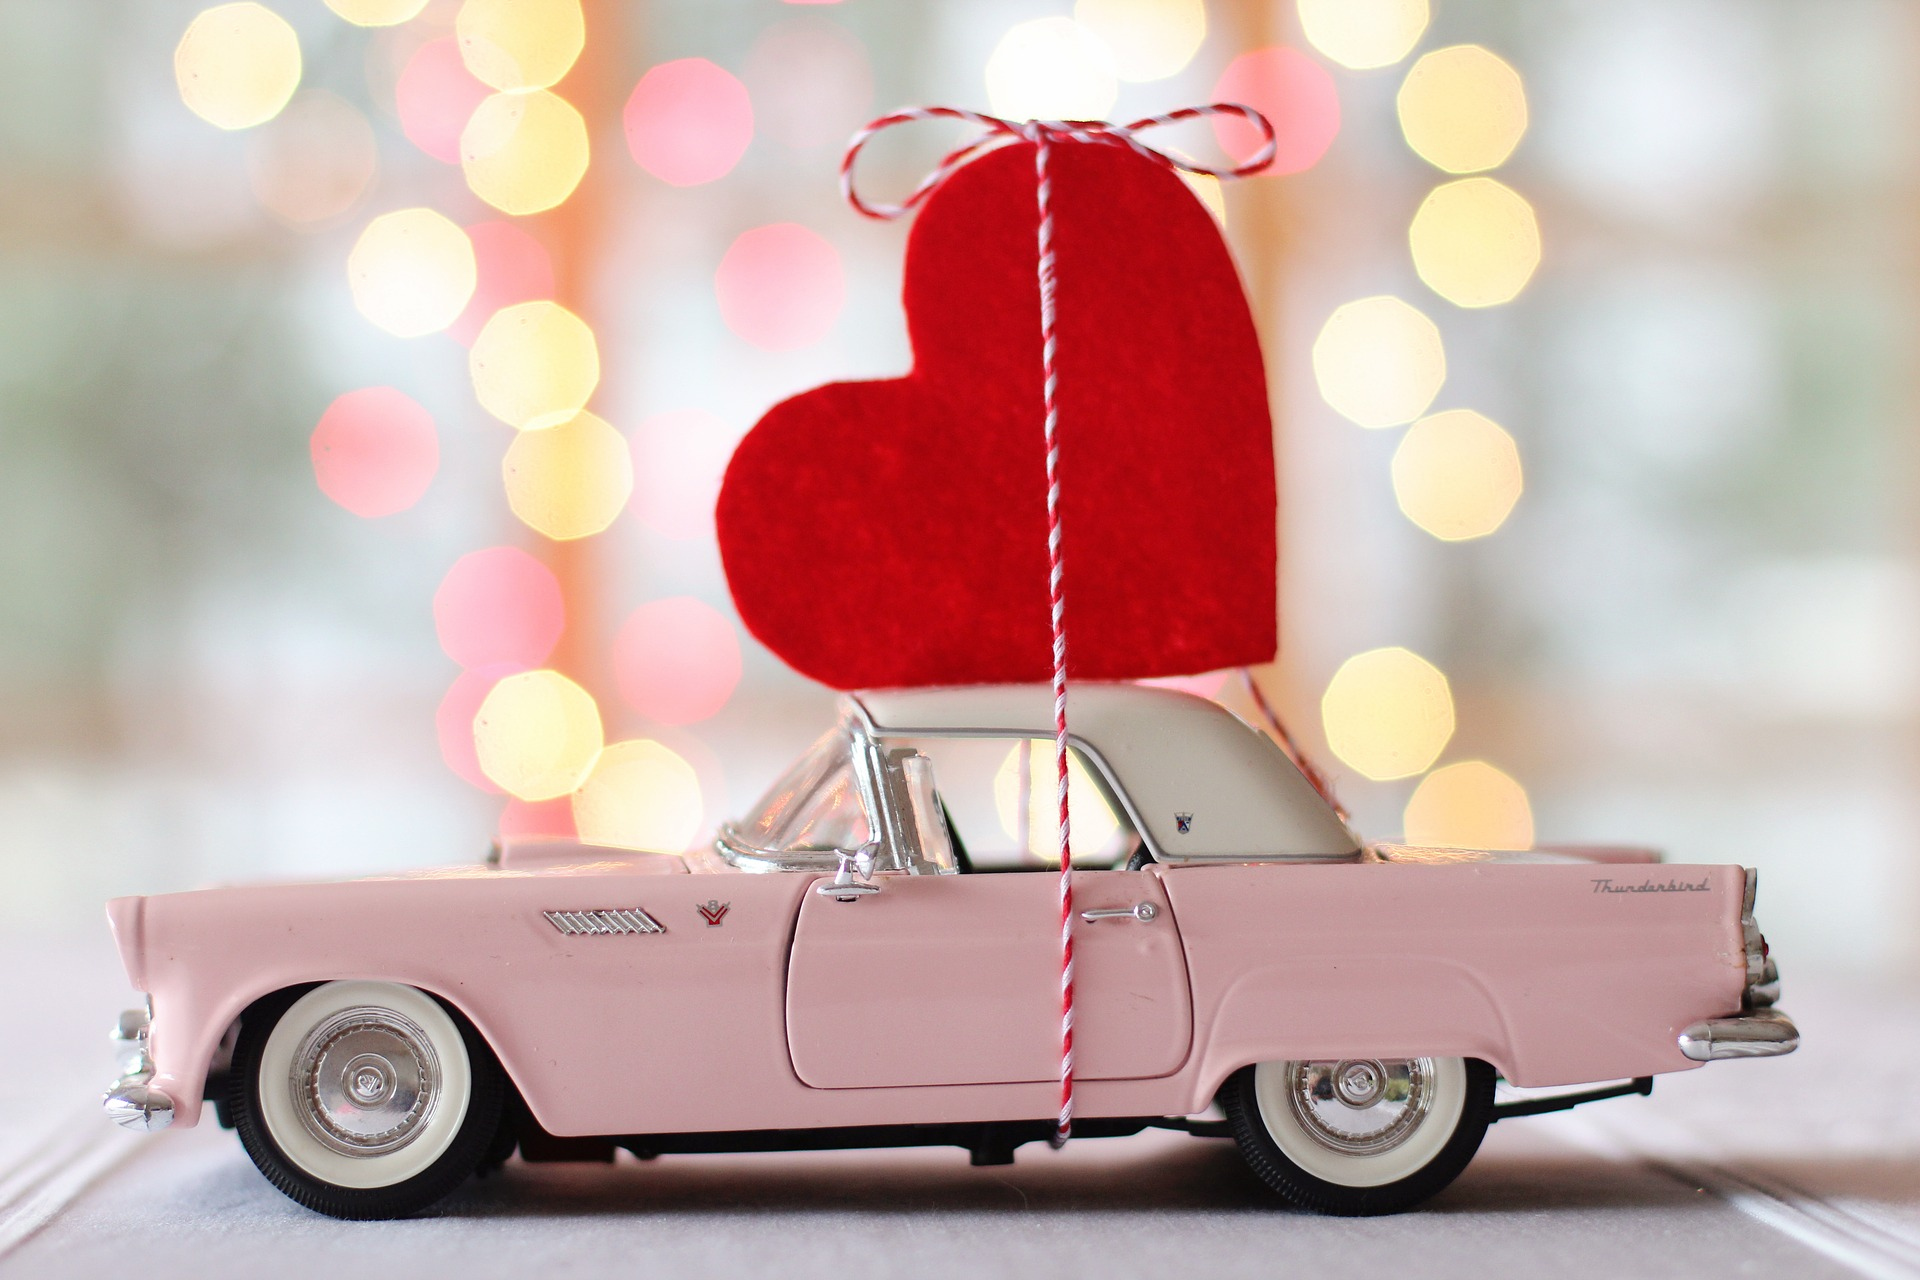 How-to-Use-Valentines-Day-in-Your-Content-Marketing.jpg